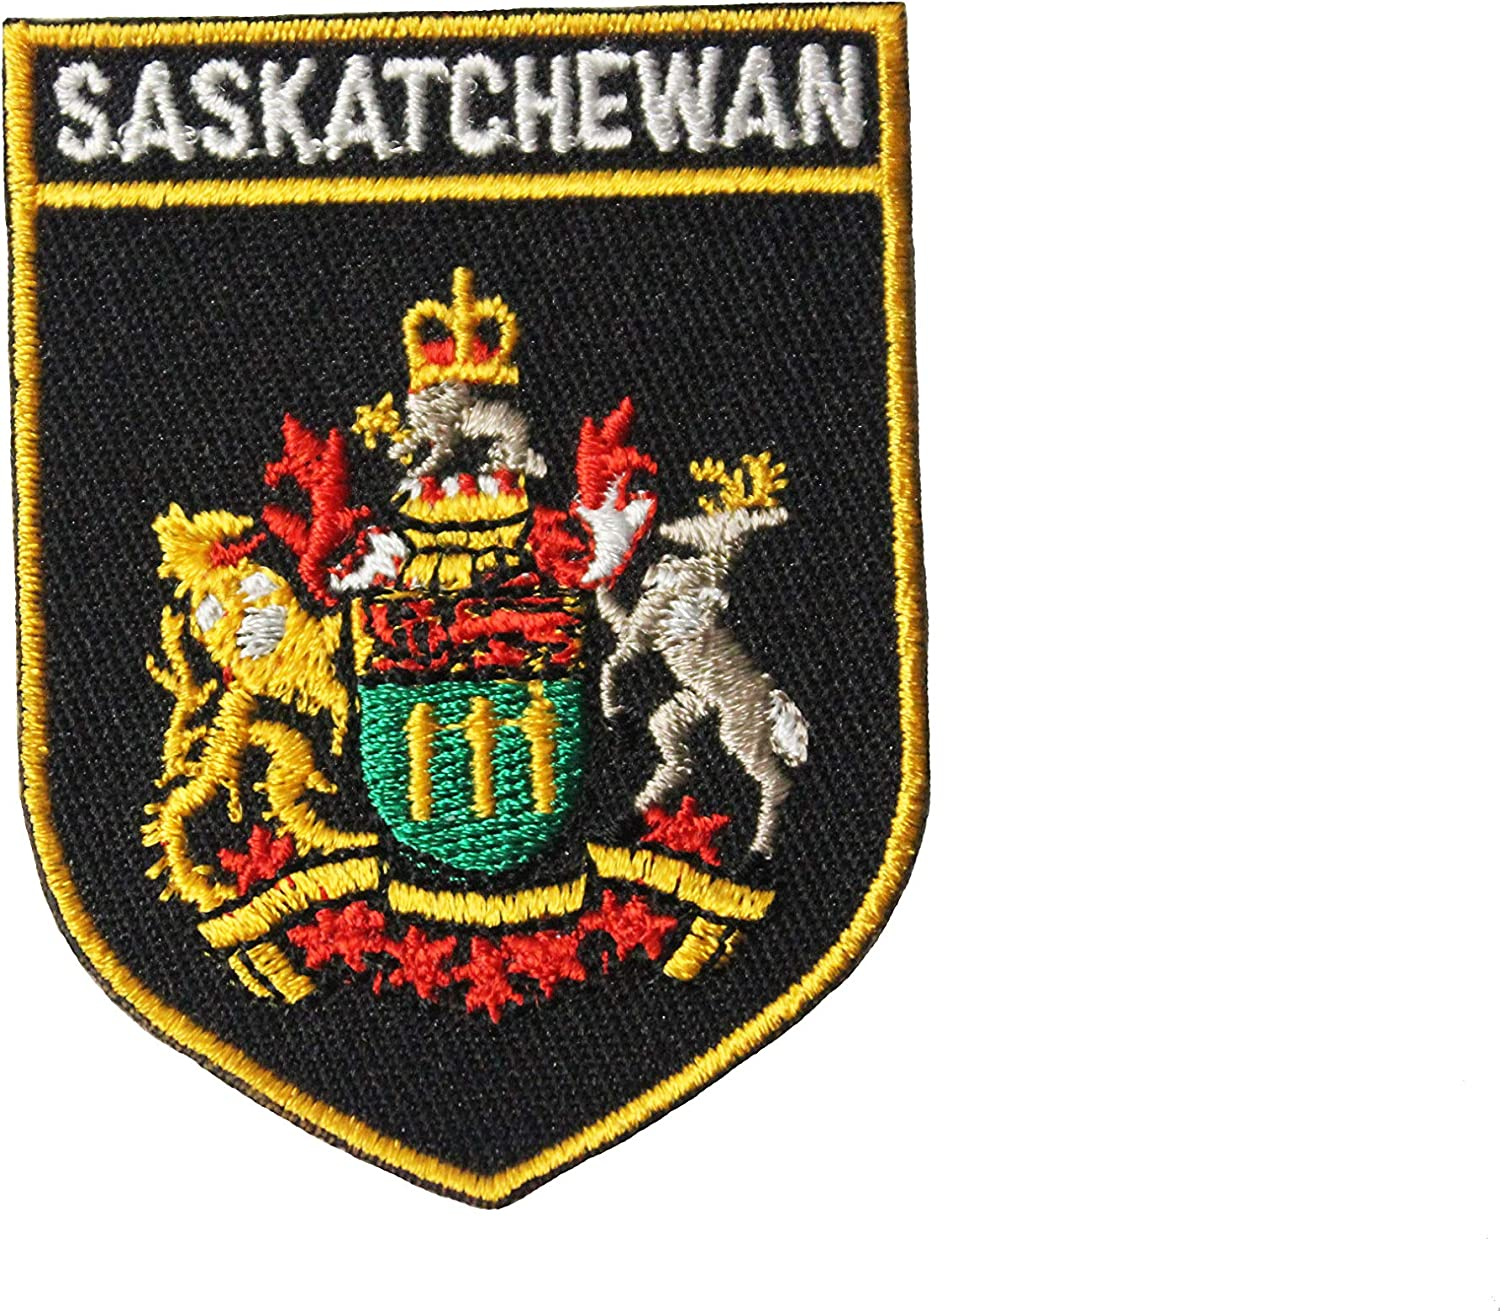 New 2 1//8 x 2 7//8 Inch SASKATCHEWAN Black Shield CANADA Provincial Flag Embroidered Iron on Patch Crest Badge.Size